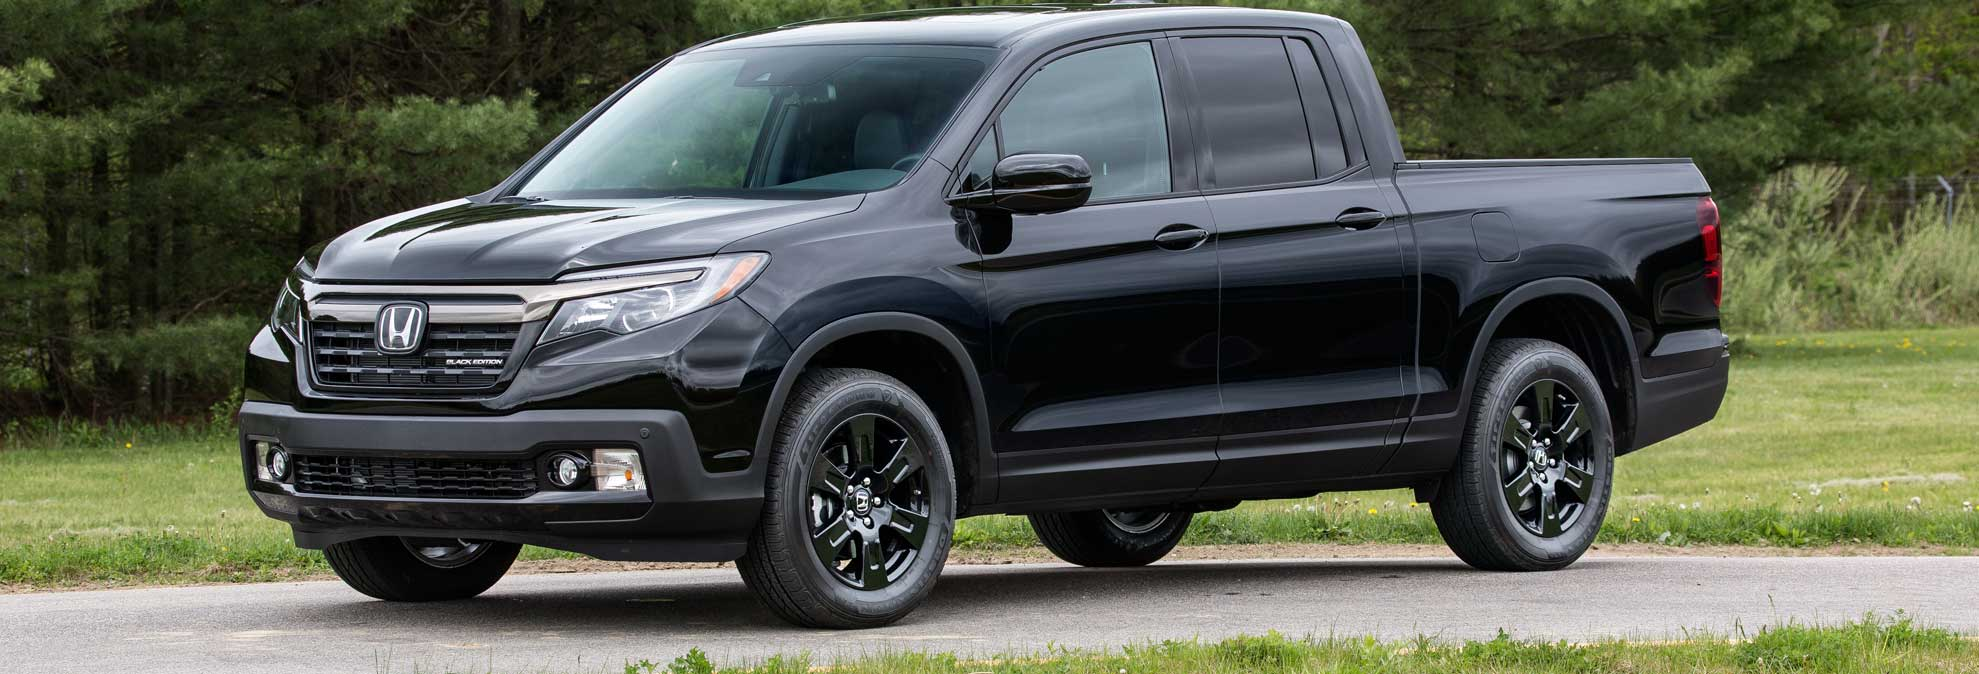 Honda Ridgeline II 2016 - now Pickup #7